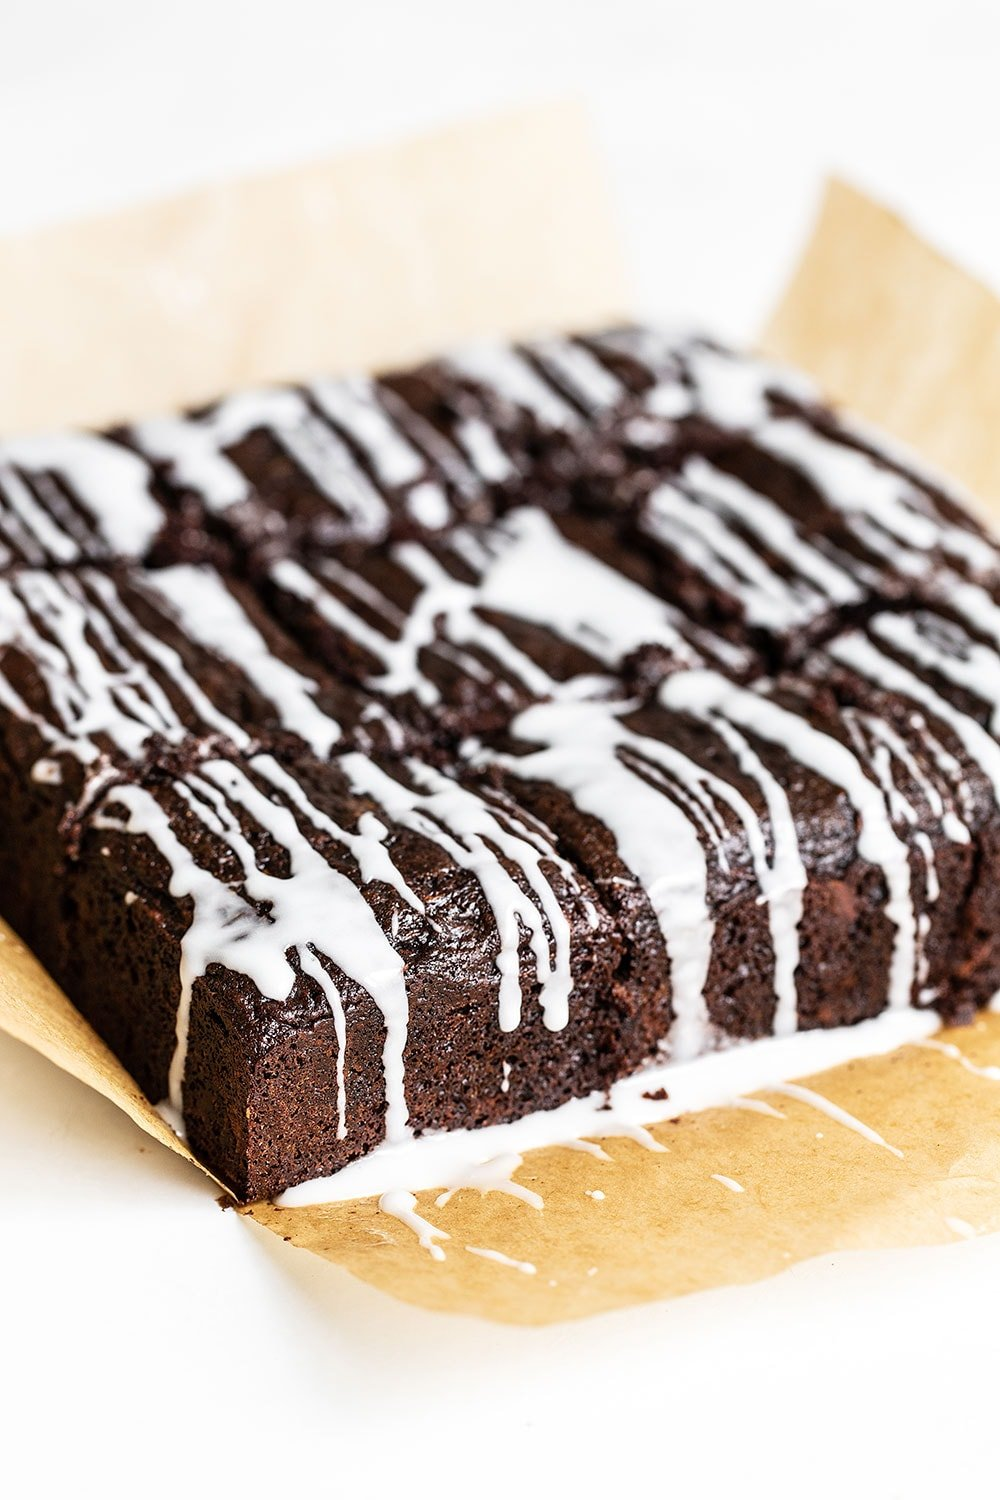 Zucchini Cake with Chocolate and a simple icing on top